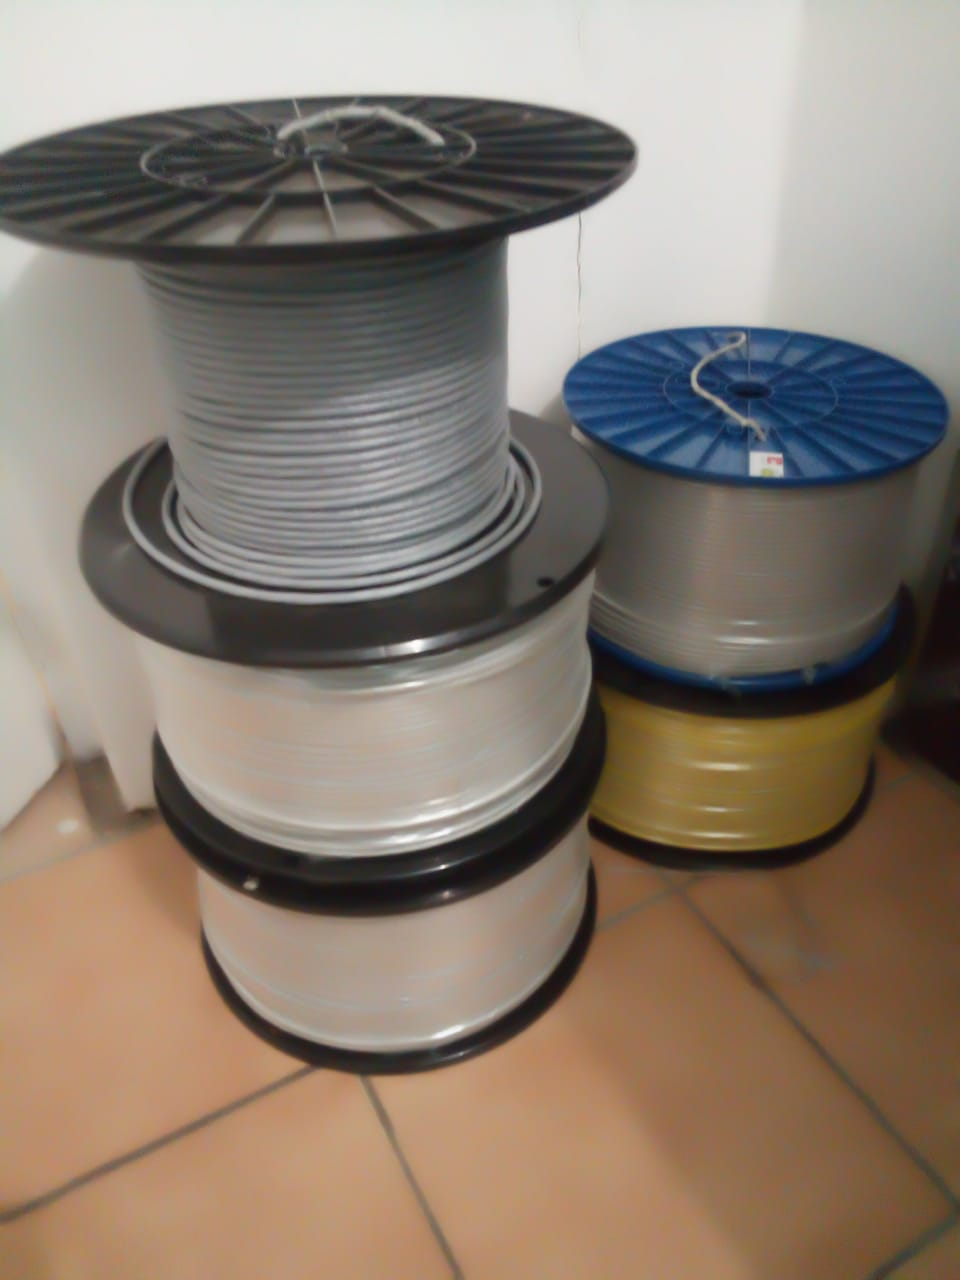 Business closing down. All stock for sale at cost. Network and fiber optic cable